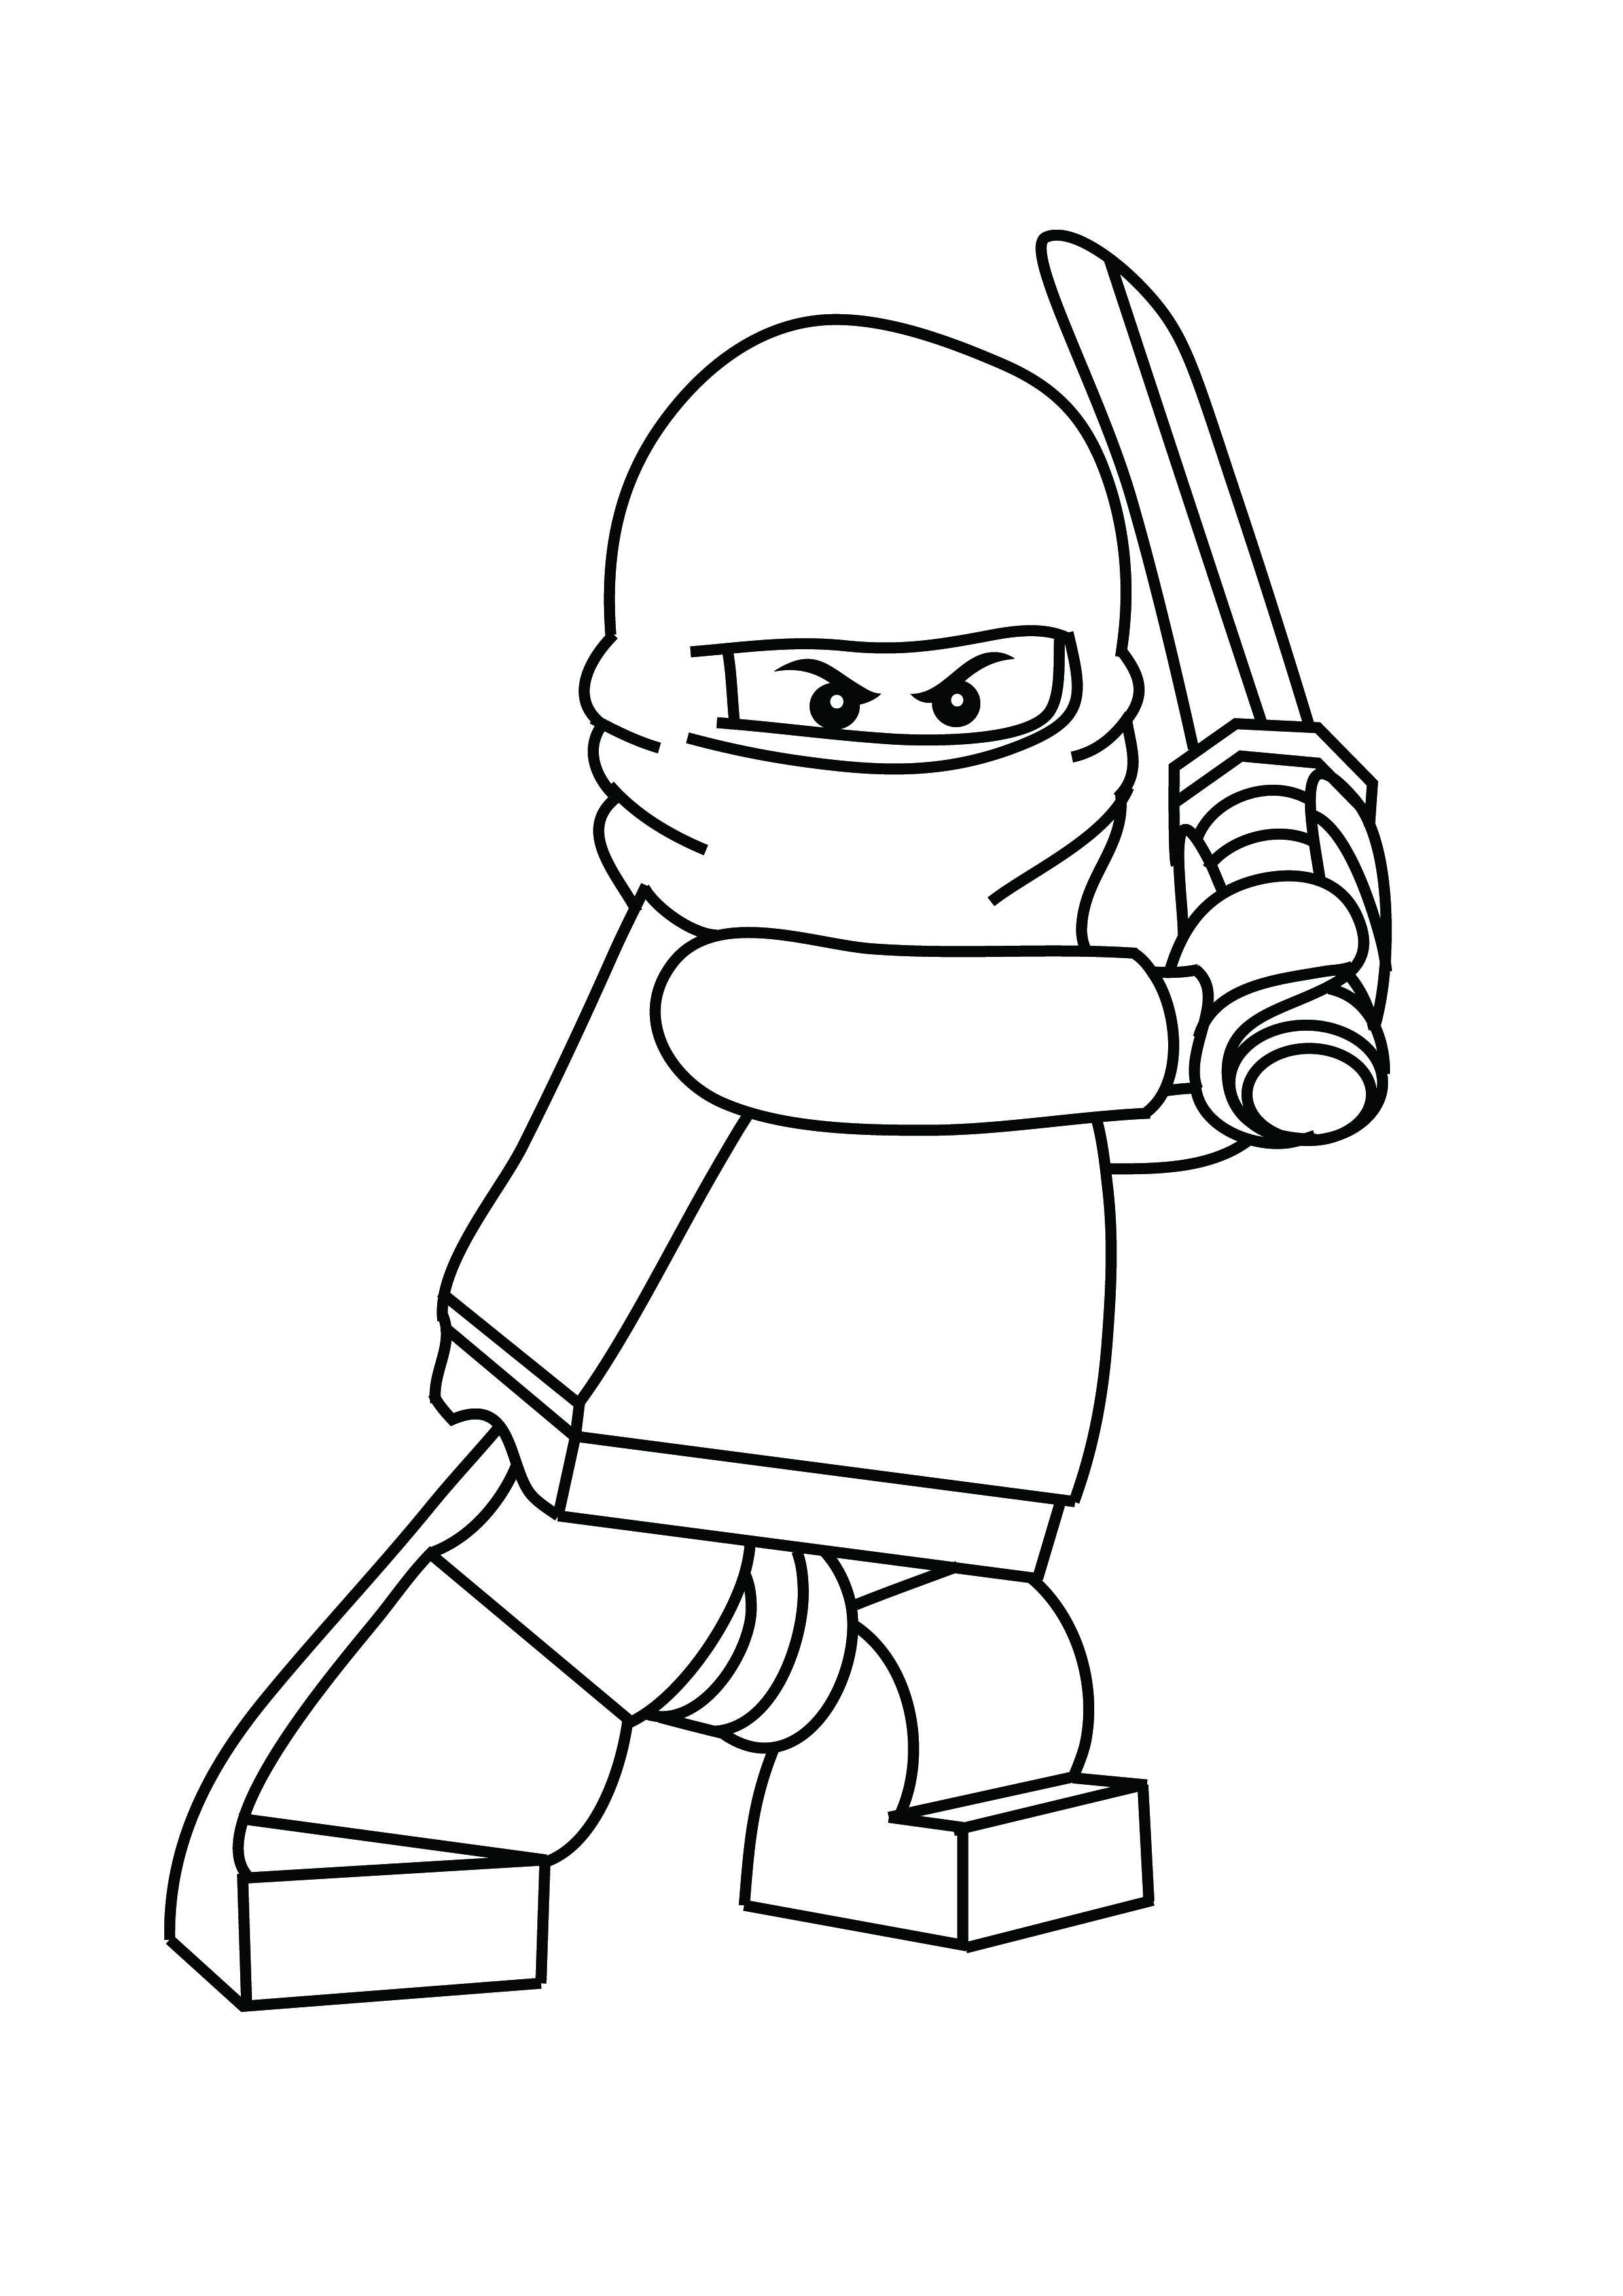 2480x3508 Coloring Pages Lego Minifigures